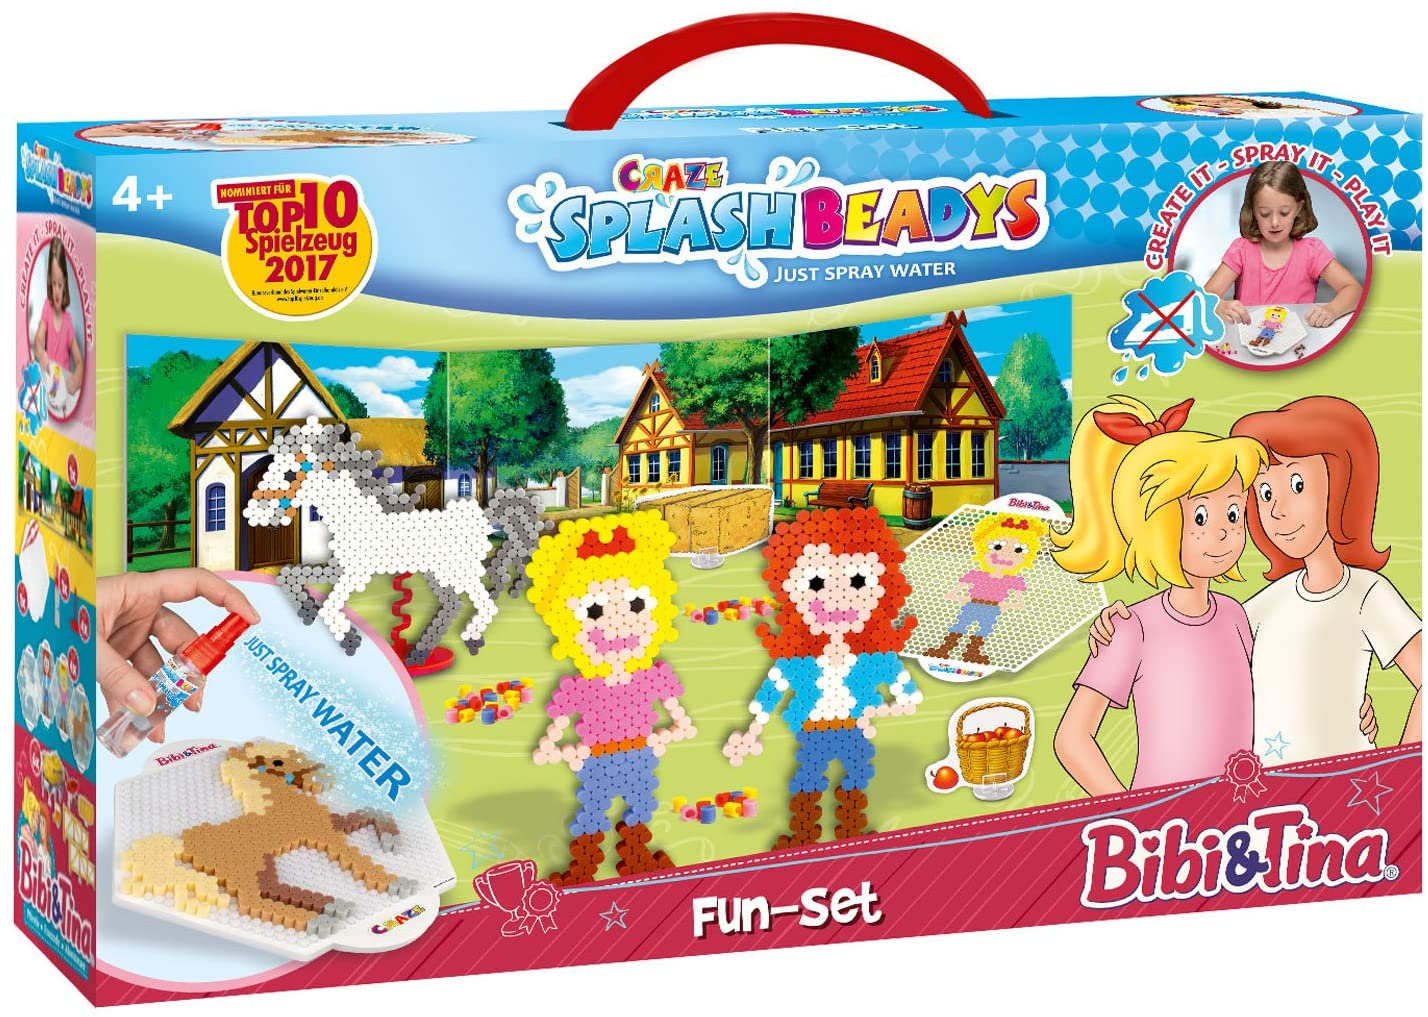 BIBI & TINA Splash Beadys Fun Set